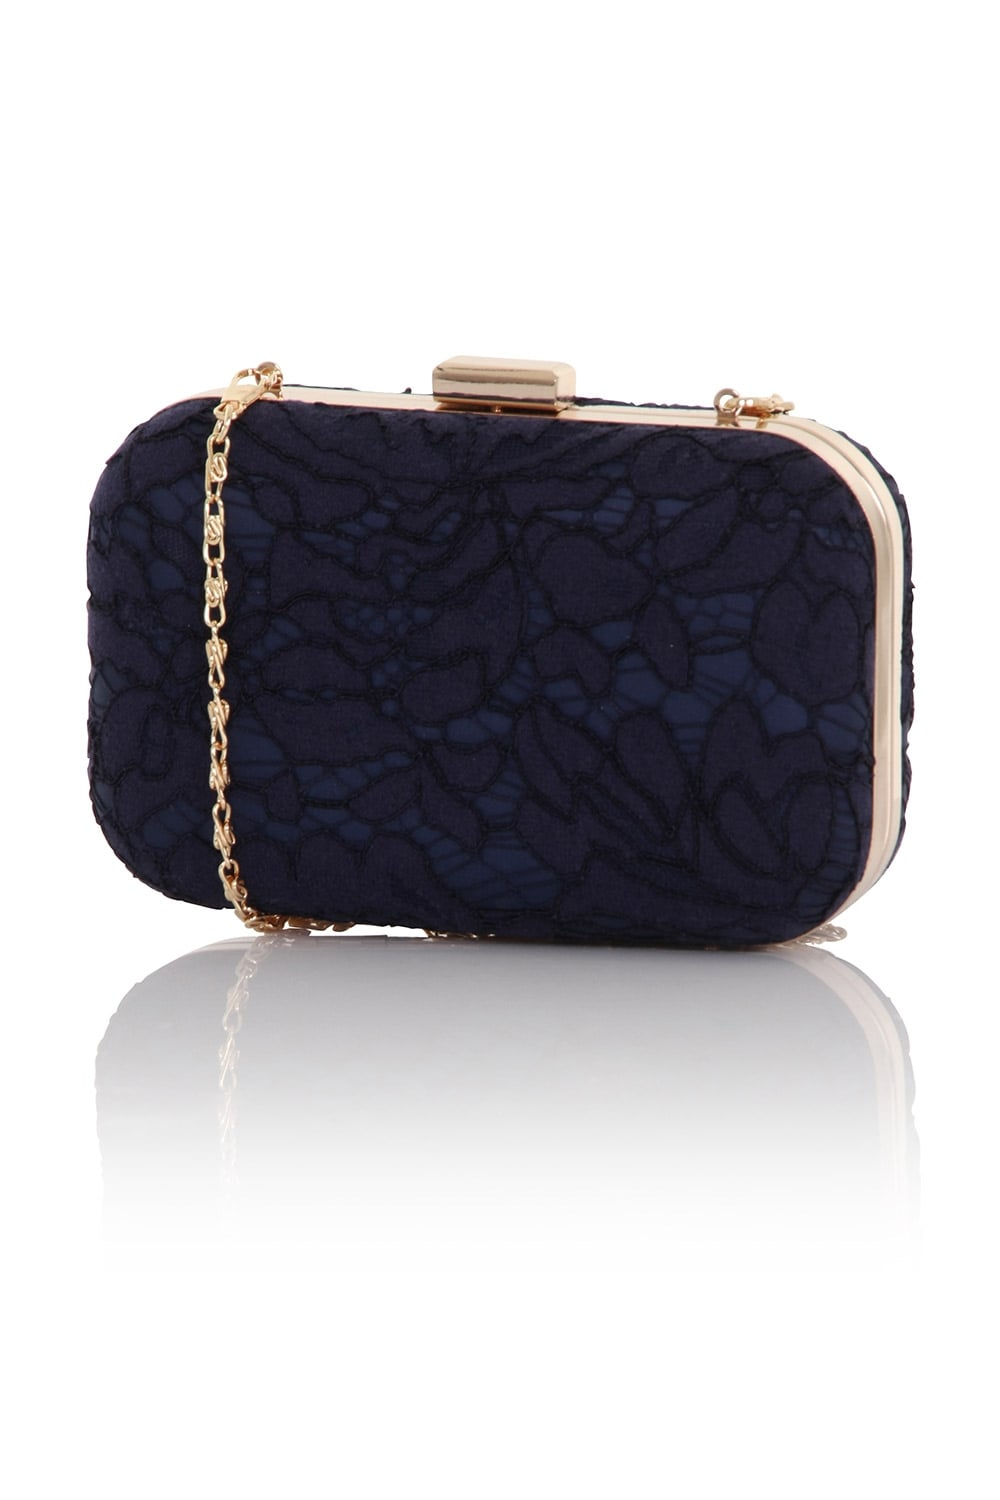 Little Mistress Handbags A Navy Box Clutch Bag In Lace With Detachable Strap